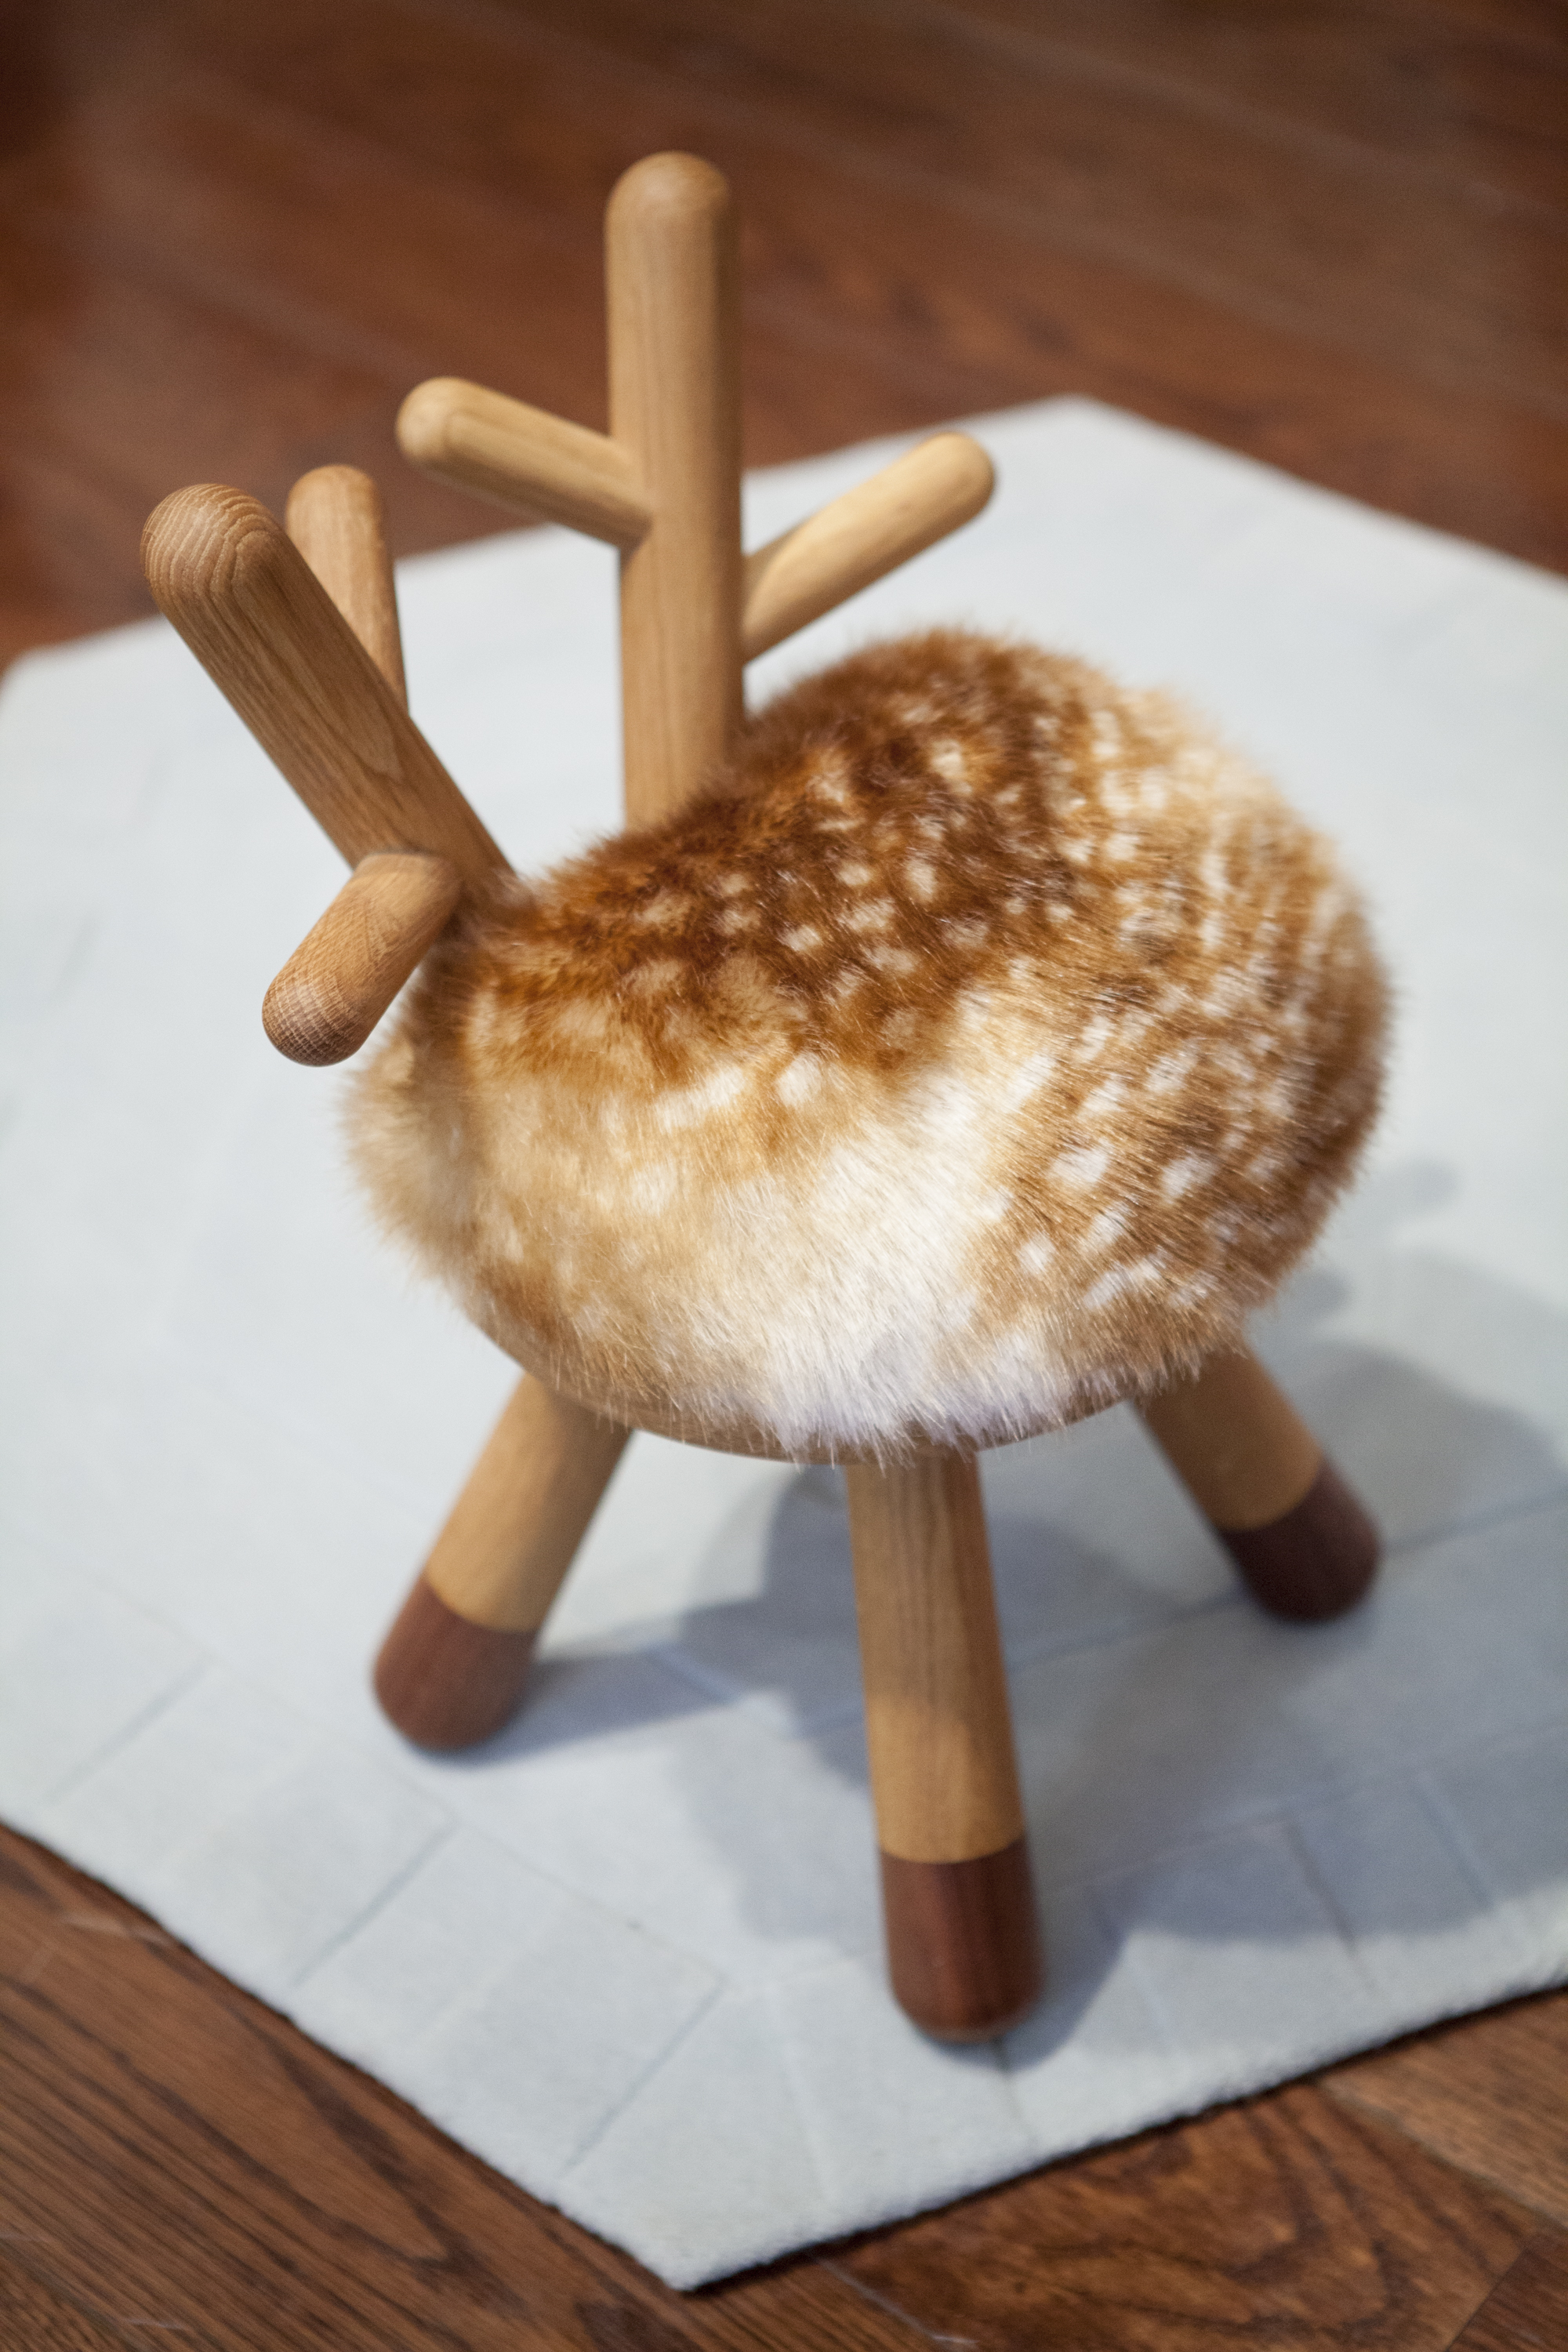 The Bambi Chair by Takeshi Sawada